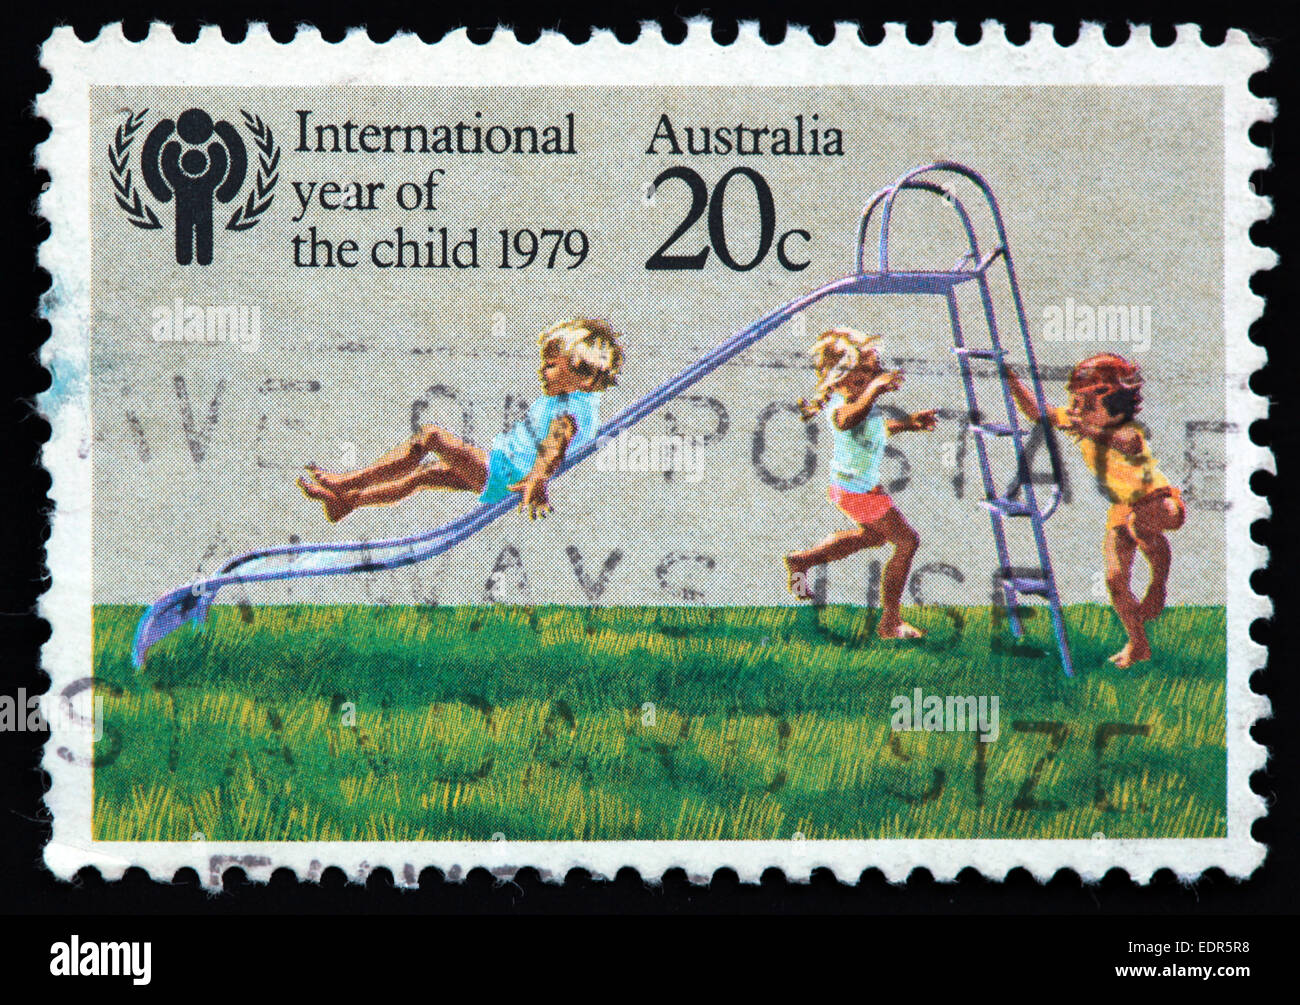 International Year of the child,international,year,of,the,child,children,play,playing,on,a,slide,unicef,grass,recreation,stamp,Used,and,postmarked,Australia,Austrailian,Stamp,post,posting,mail,hobby,perforation,mark,postage,stamp,print,stamp,cancelled,stamp,payment,correspondence,po,Gotonysmith,todler,todlers,babies,juveniles,kid,kids,philatelist,letter,price,history,retro,Australian,Vintage,delivery,date,relationship,communication,Oz,Australia,DownUnder,classic rare unique Austrailian financial,investment,invest,value,British,empire,nation,canceled,printed on black background,close-up,closeup,close,up,sent,send,philately,mailing,shipping,postoffice,office,isolated,circa,special,colour,color,postmarked,marked,airmail,aged,antique,retro,cutting,historic,old,stamps,collection,stamp collection,album,Timbre,Sello,Stempel,Selo,Down Under,Black background,Buy Pictures of,Buy Images Of